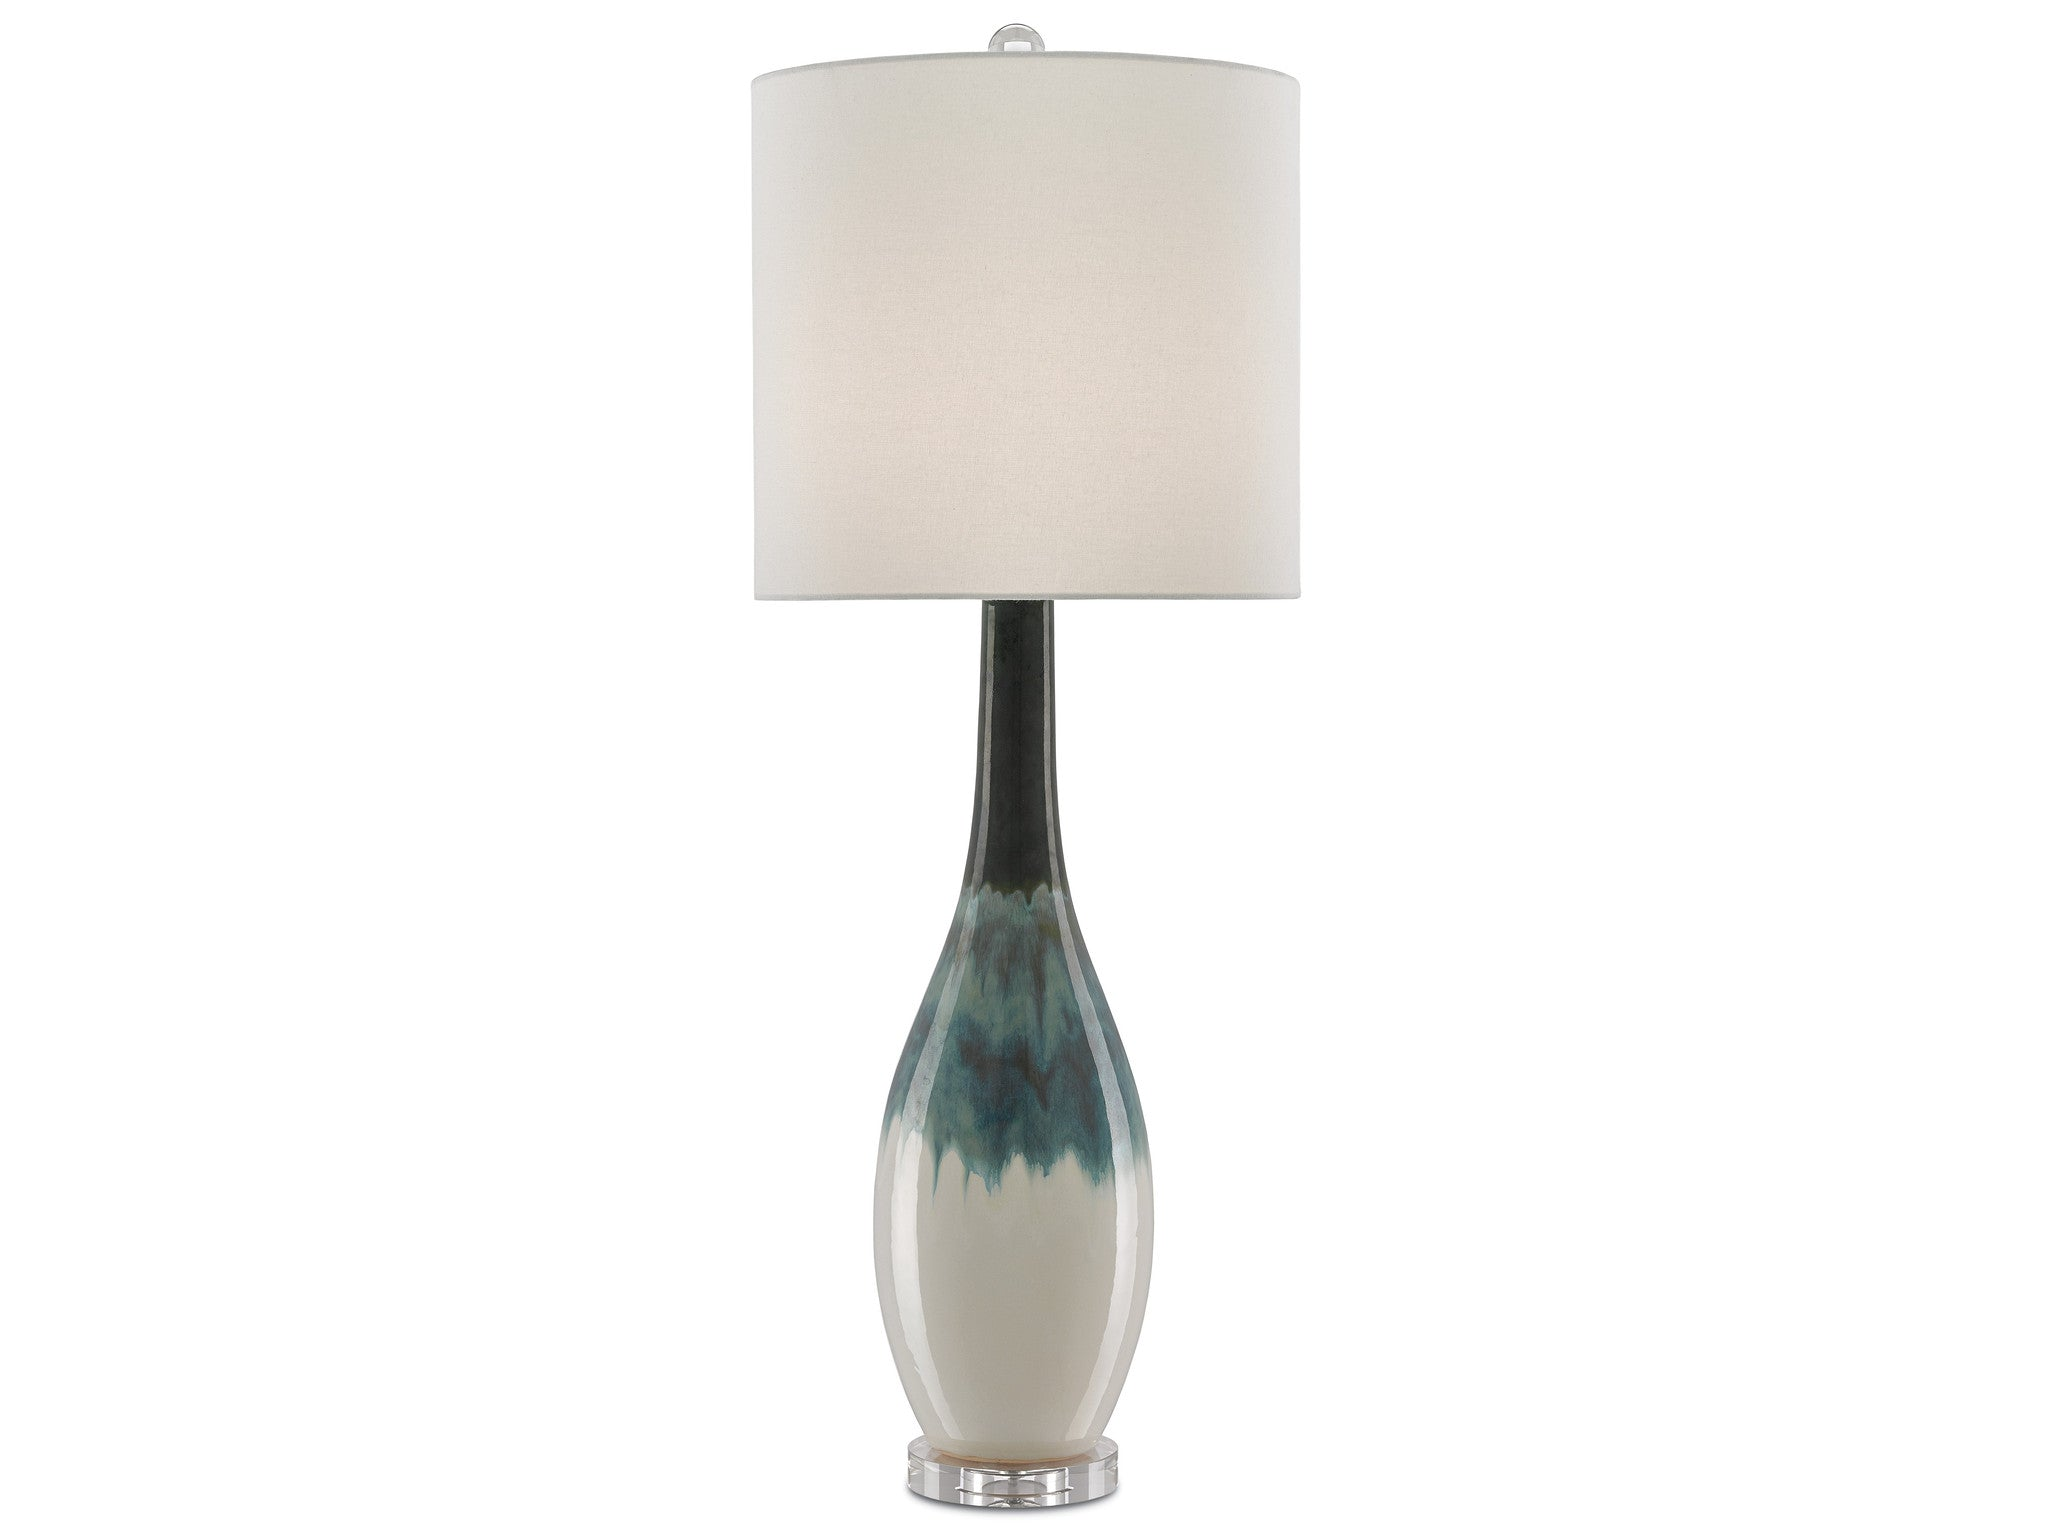 Rothko Table Lamp in Green design by Currey & Company